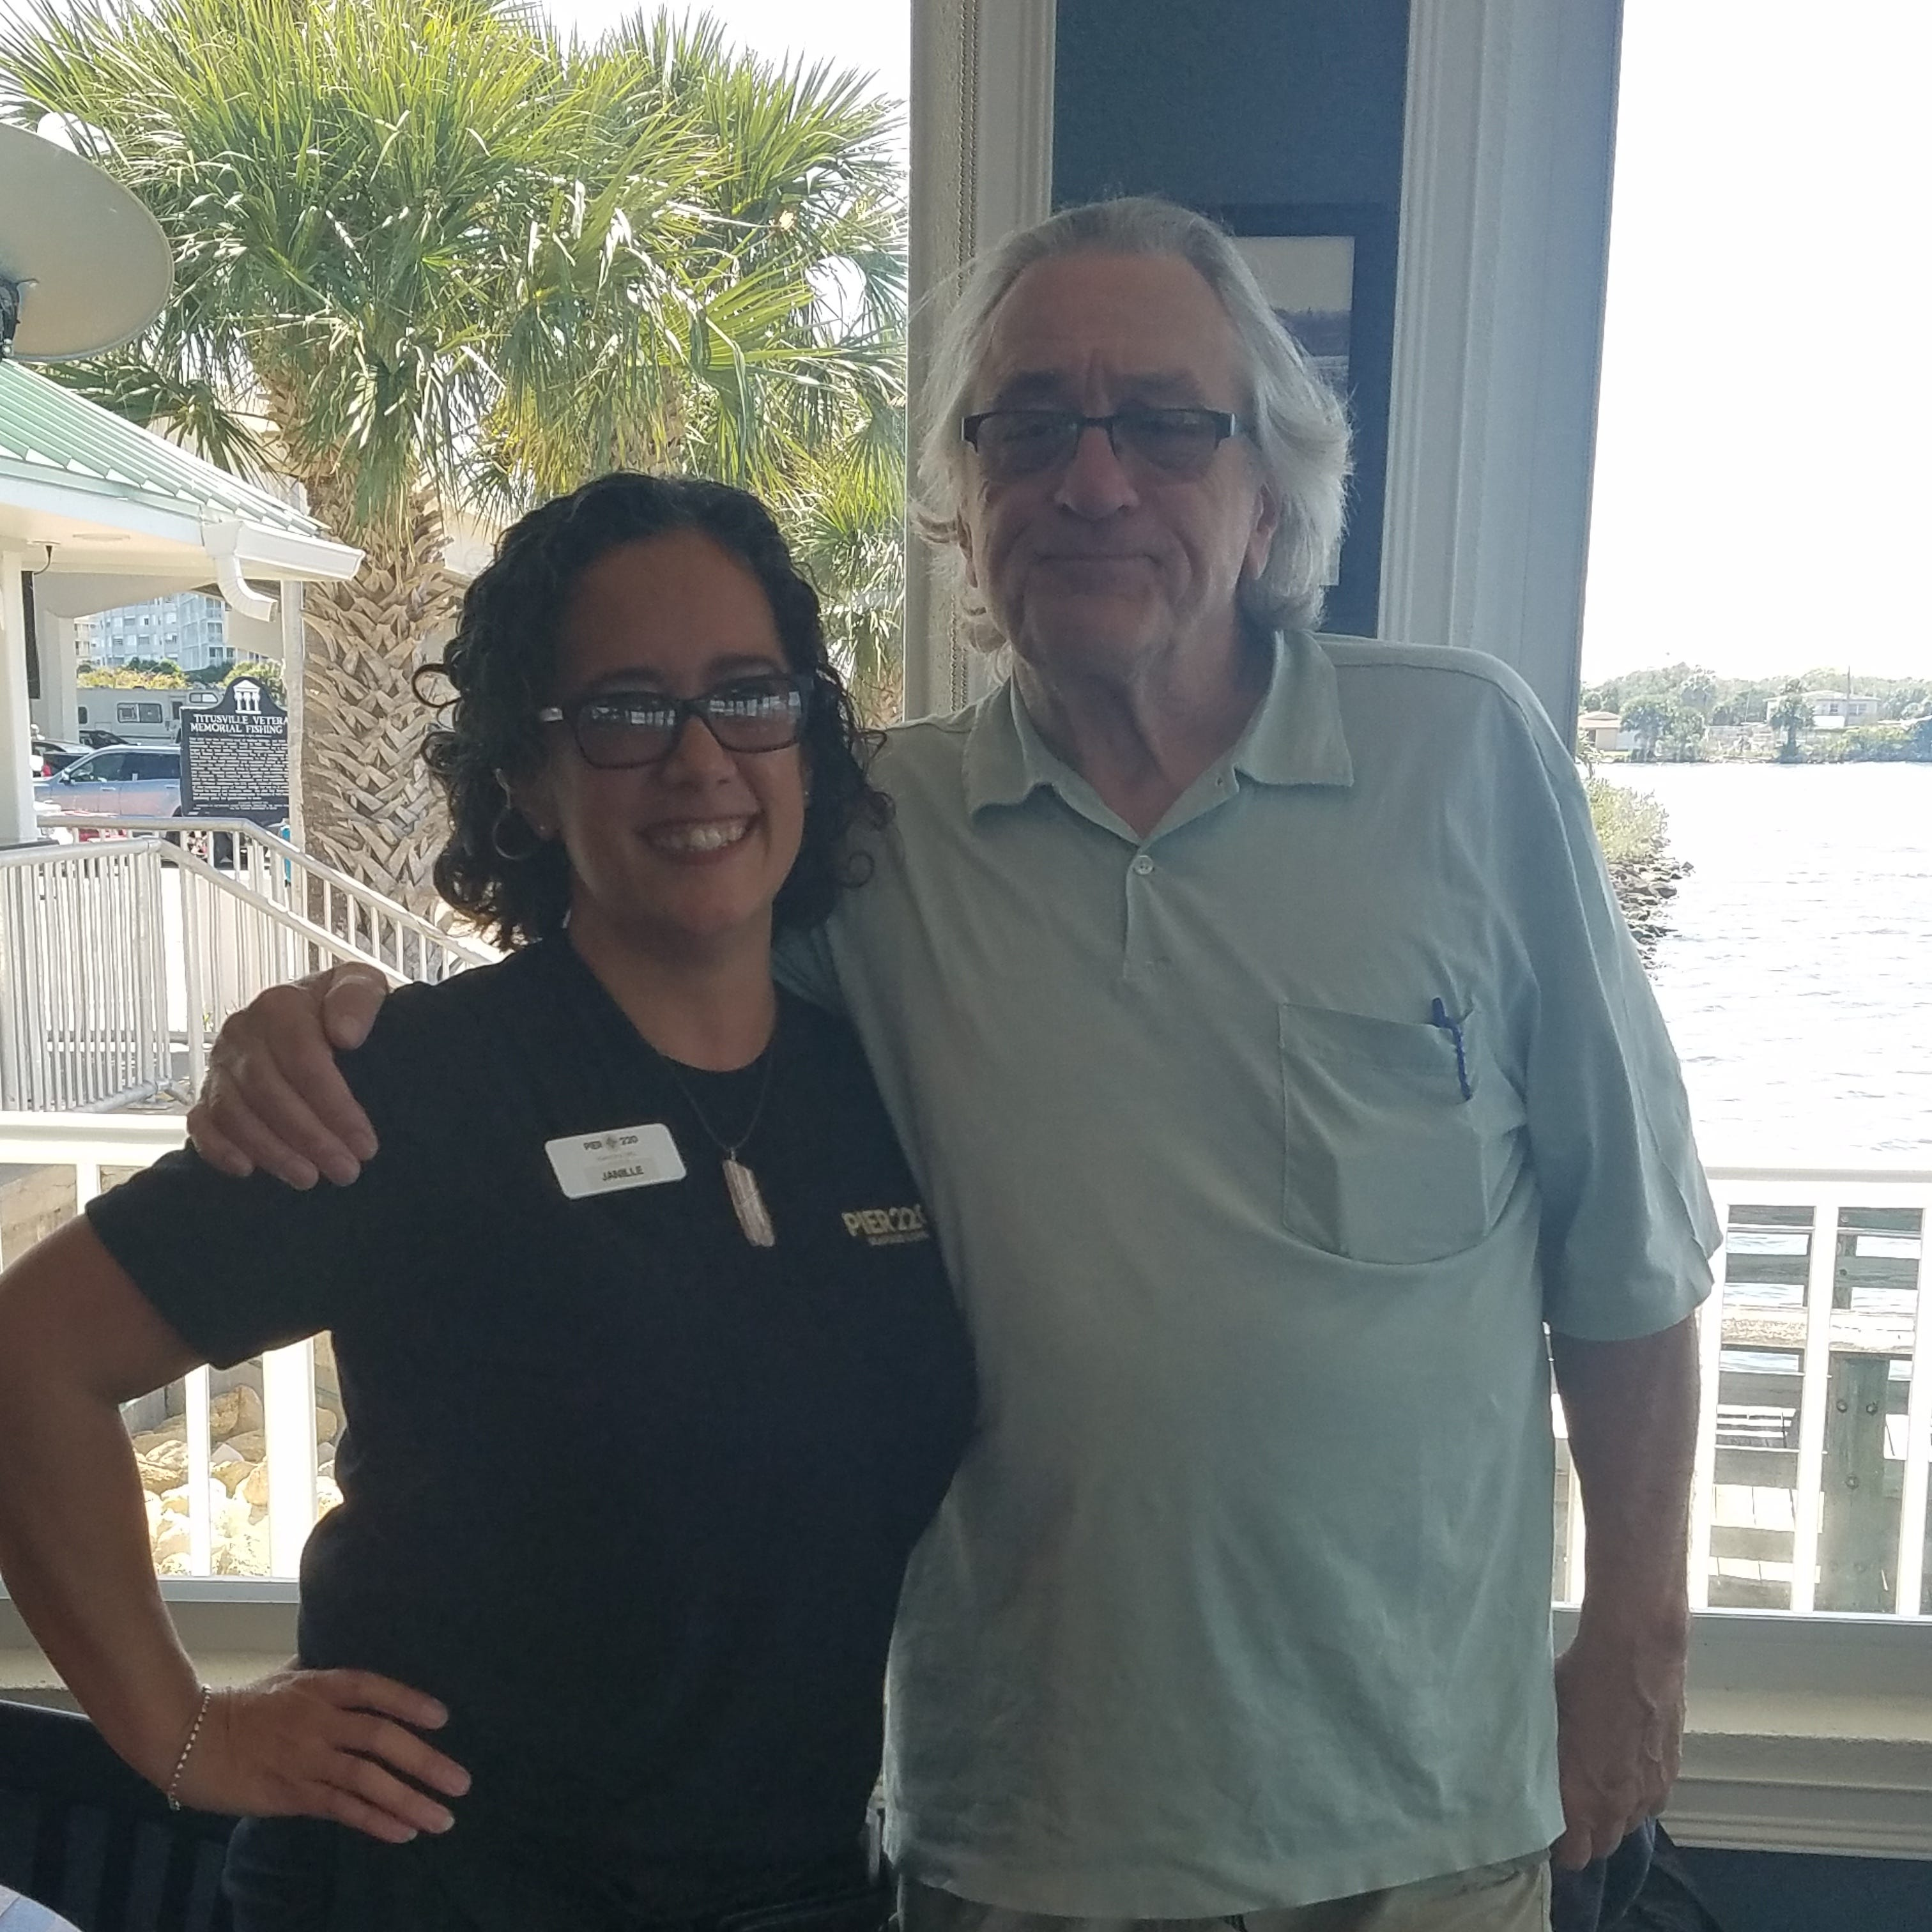 """Janille Eclavea, a server at Pier 220, waited on Robert De Niro and his family at the Titusville restaurant. Eclavea called her super famous guest """"really nice."""""""